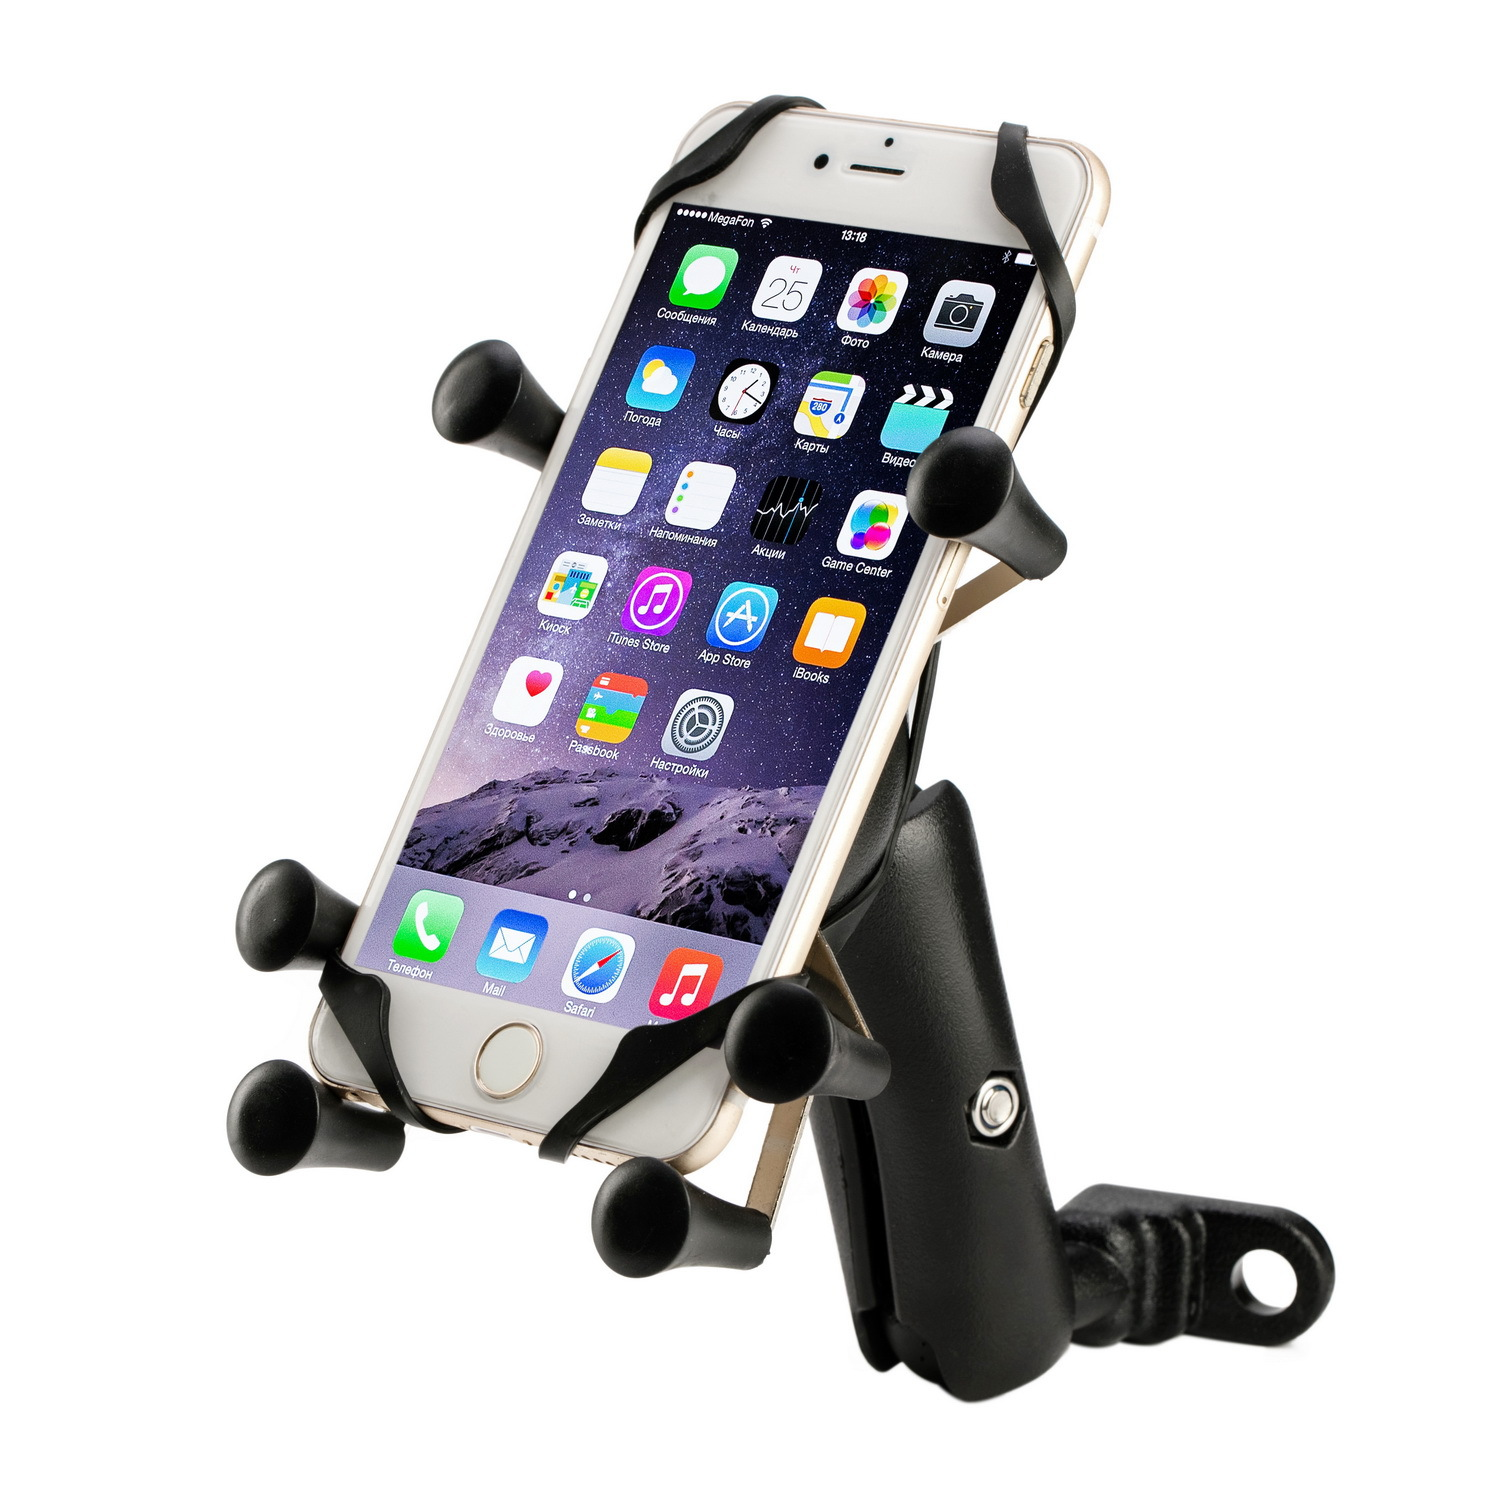 Motorcycle Mobile Phone Bracket E-Bike Mobile Phone Bracket Six-claw Mobile Phone Bracket Shatter-resistant Shock-resistant Car